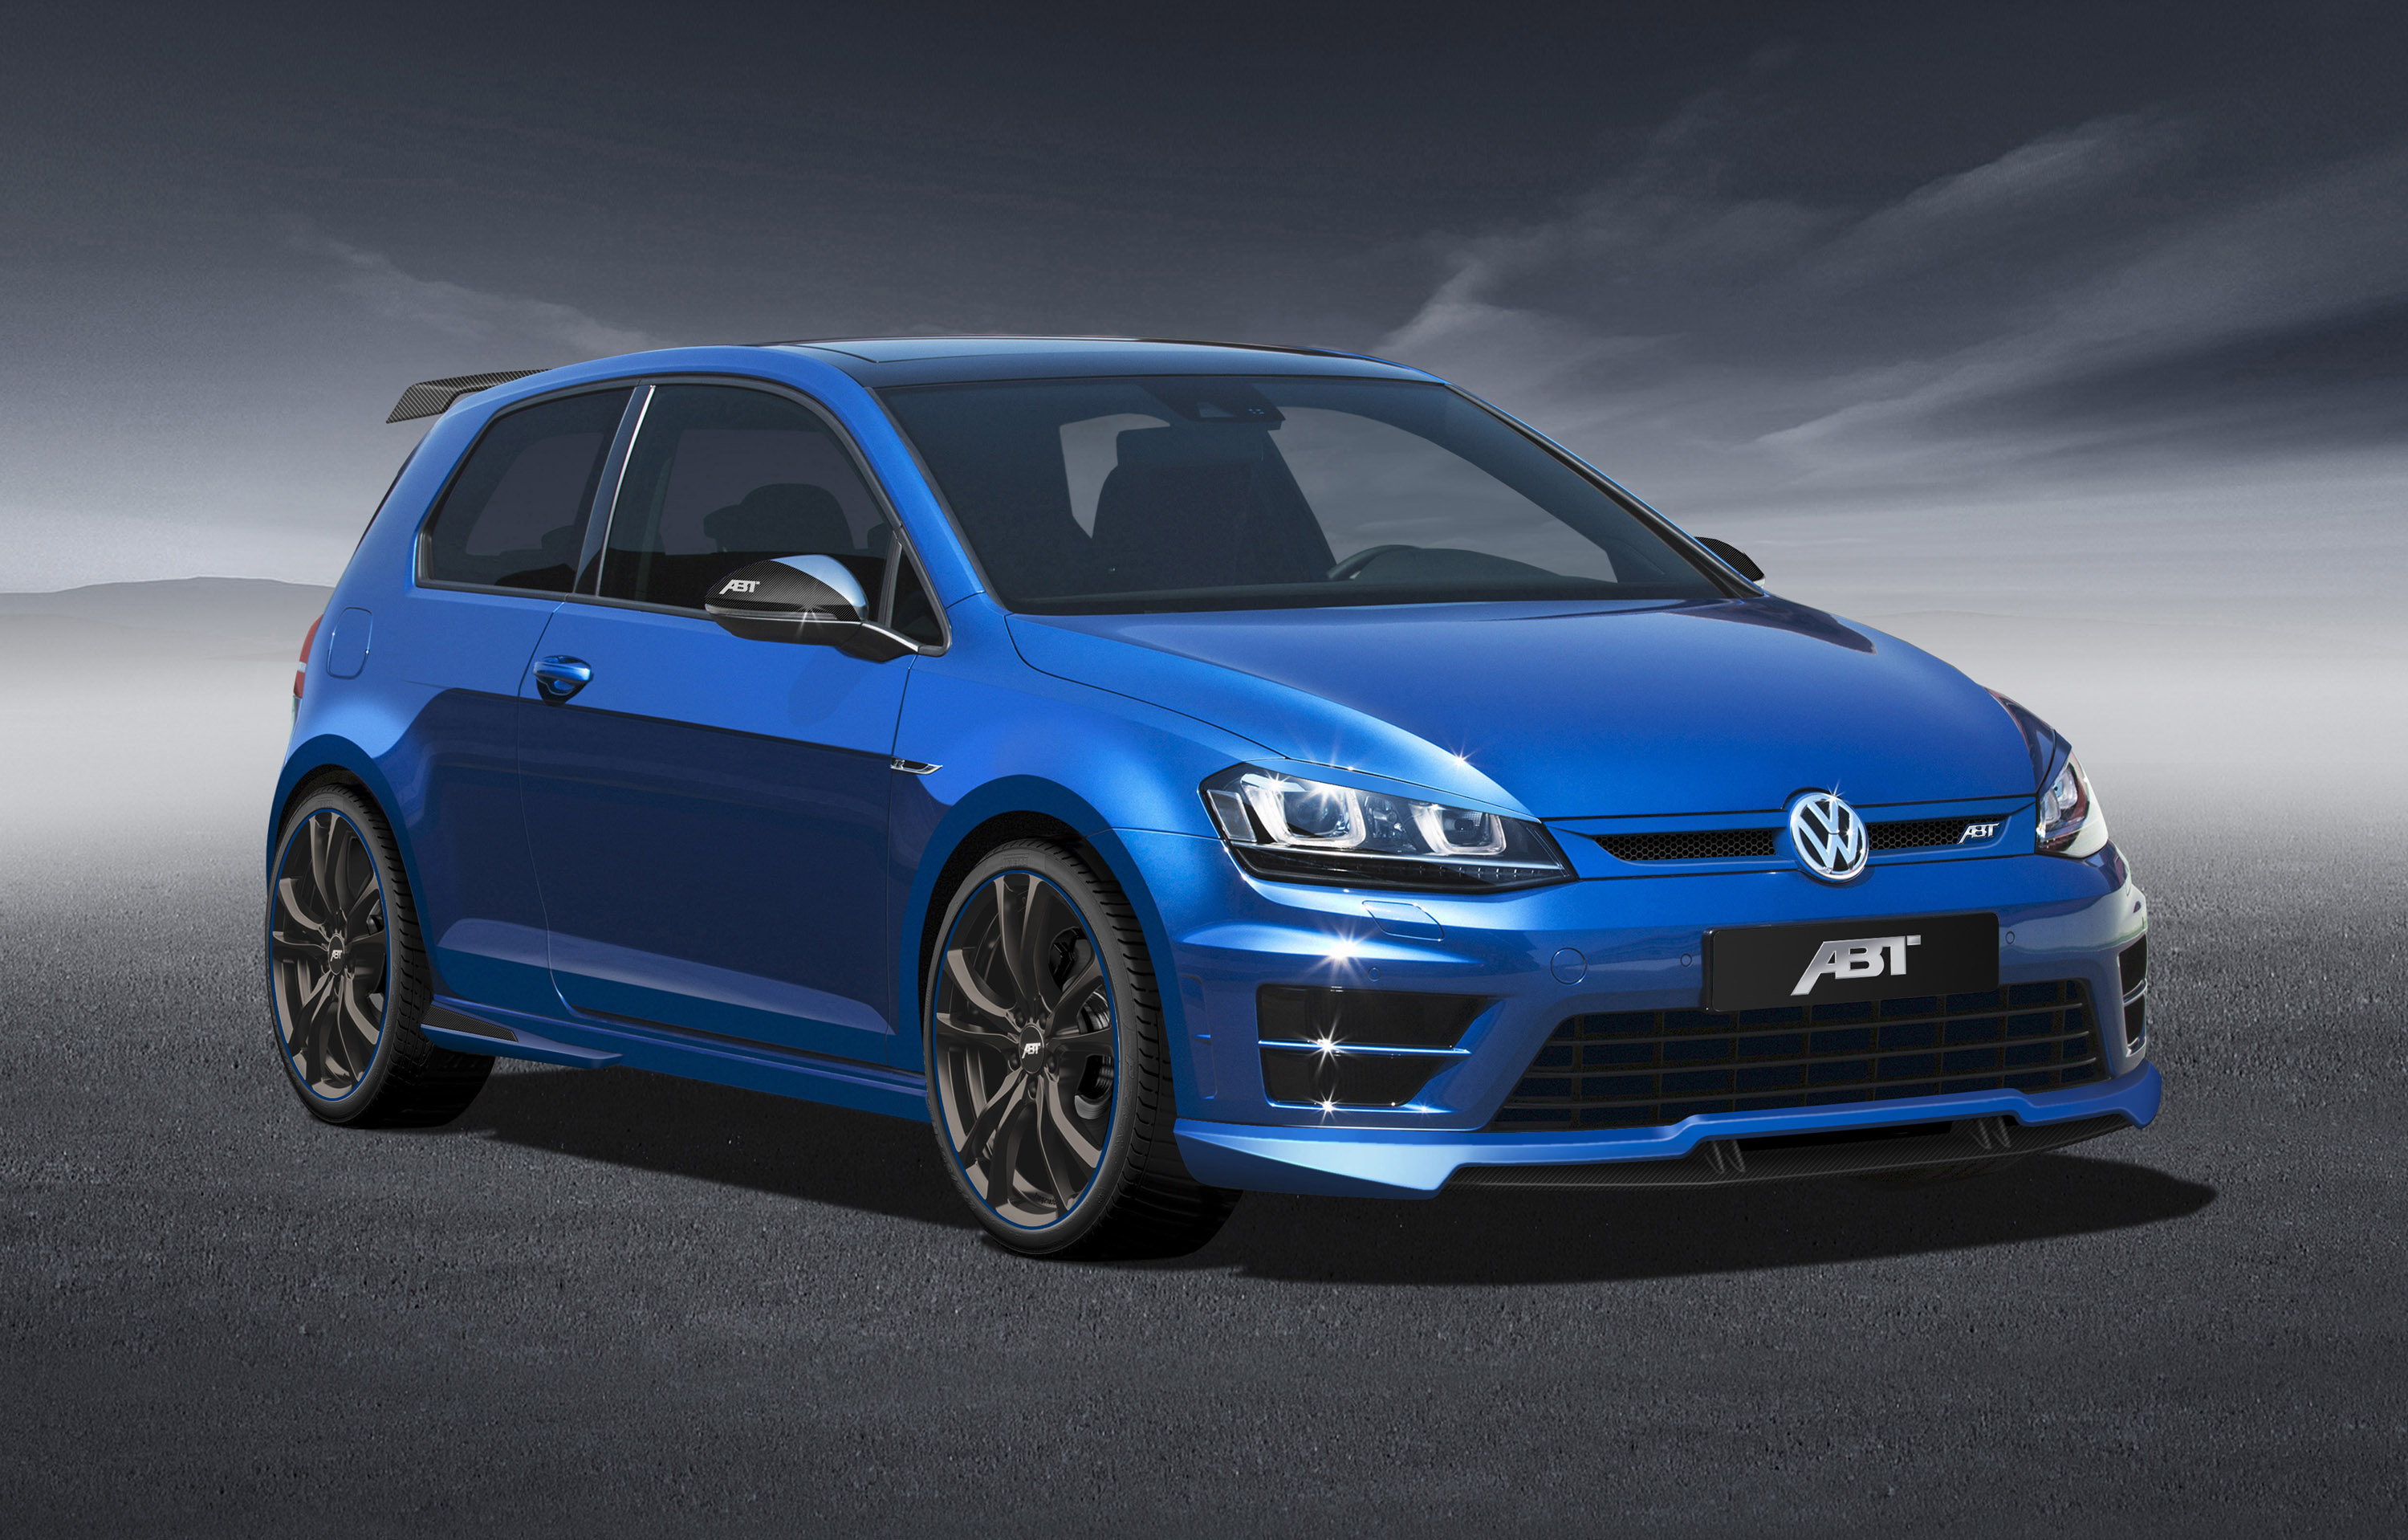 abt volkswagen golf vii r 370hp and 460nm. Black Bedroom Furniture Sets. Home Design Ideas